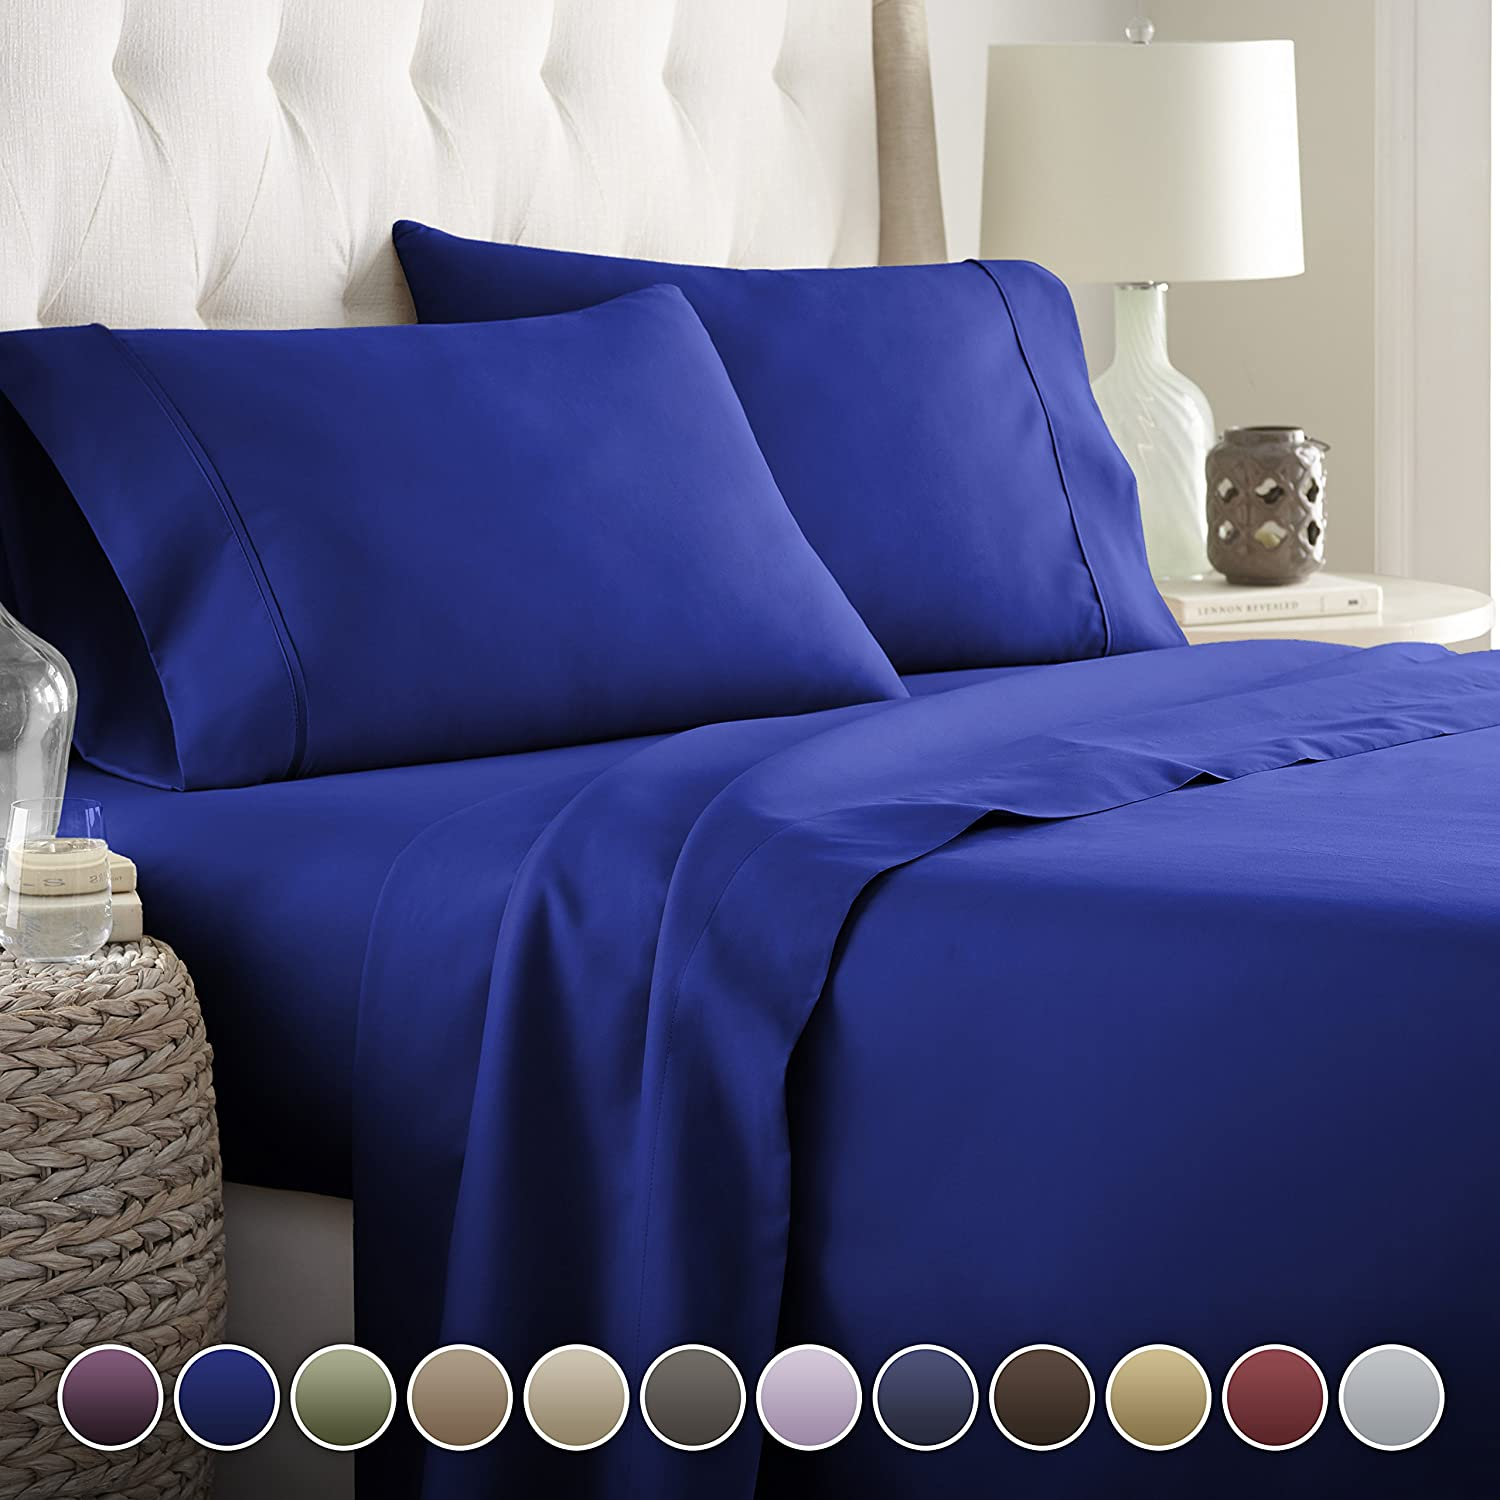 Hotel Luxury Bed Sheets